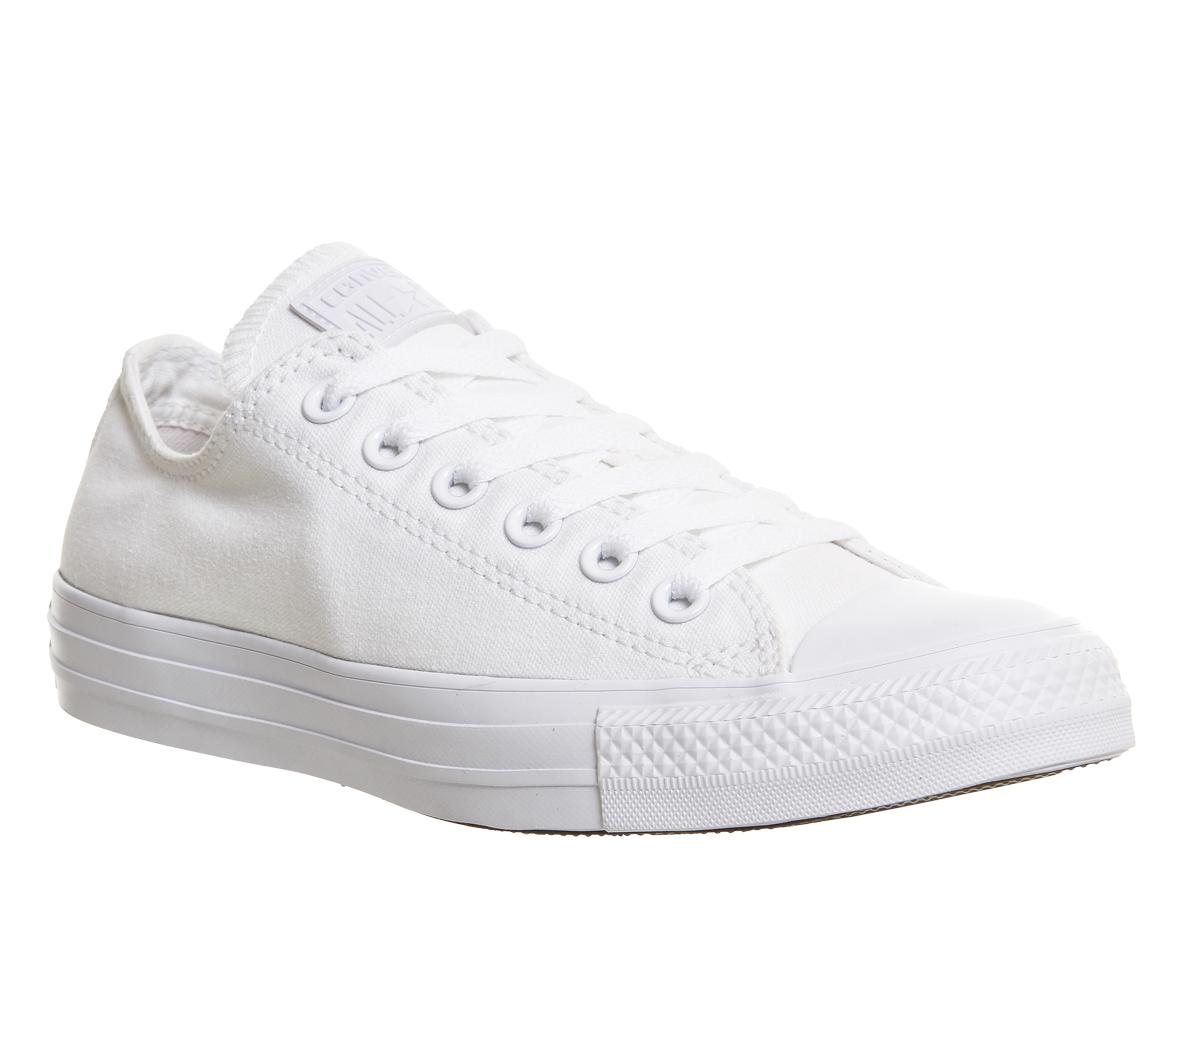 c76ae569f9ed Converse All Star Low White Mono Canvas - Unisex Sports